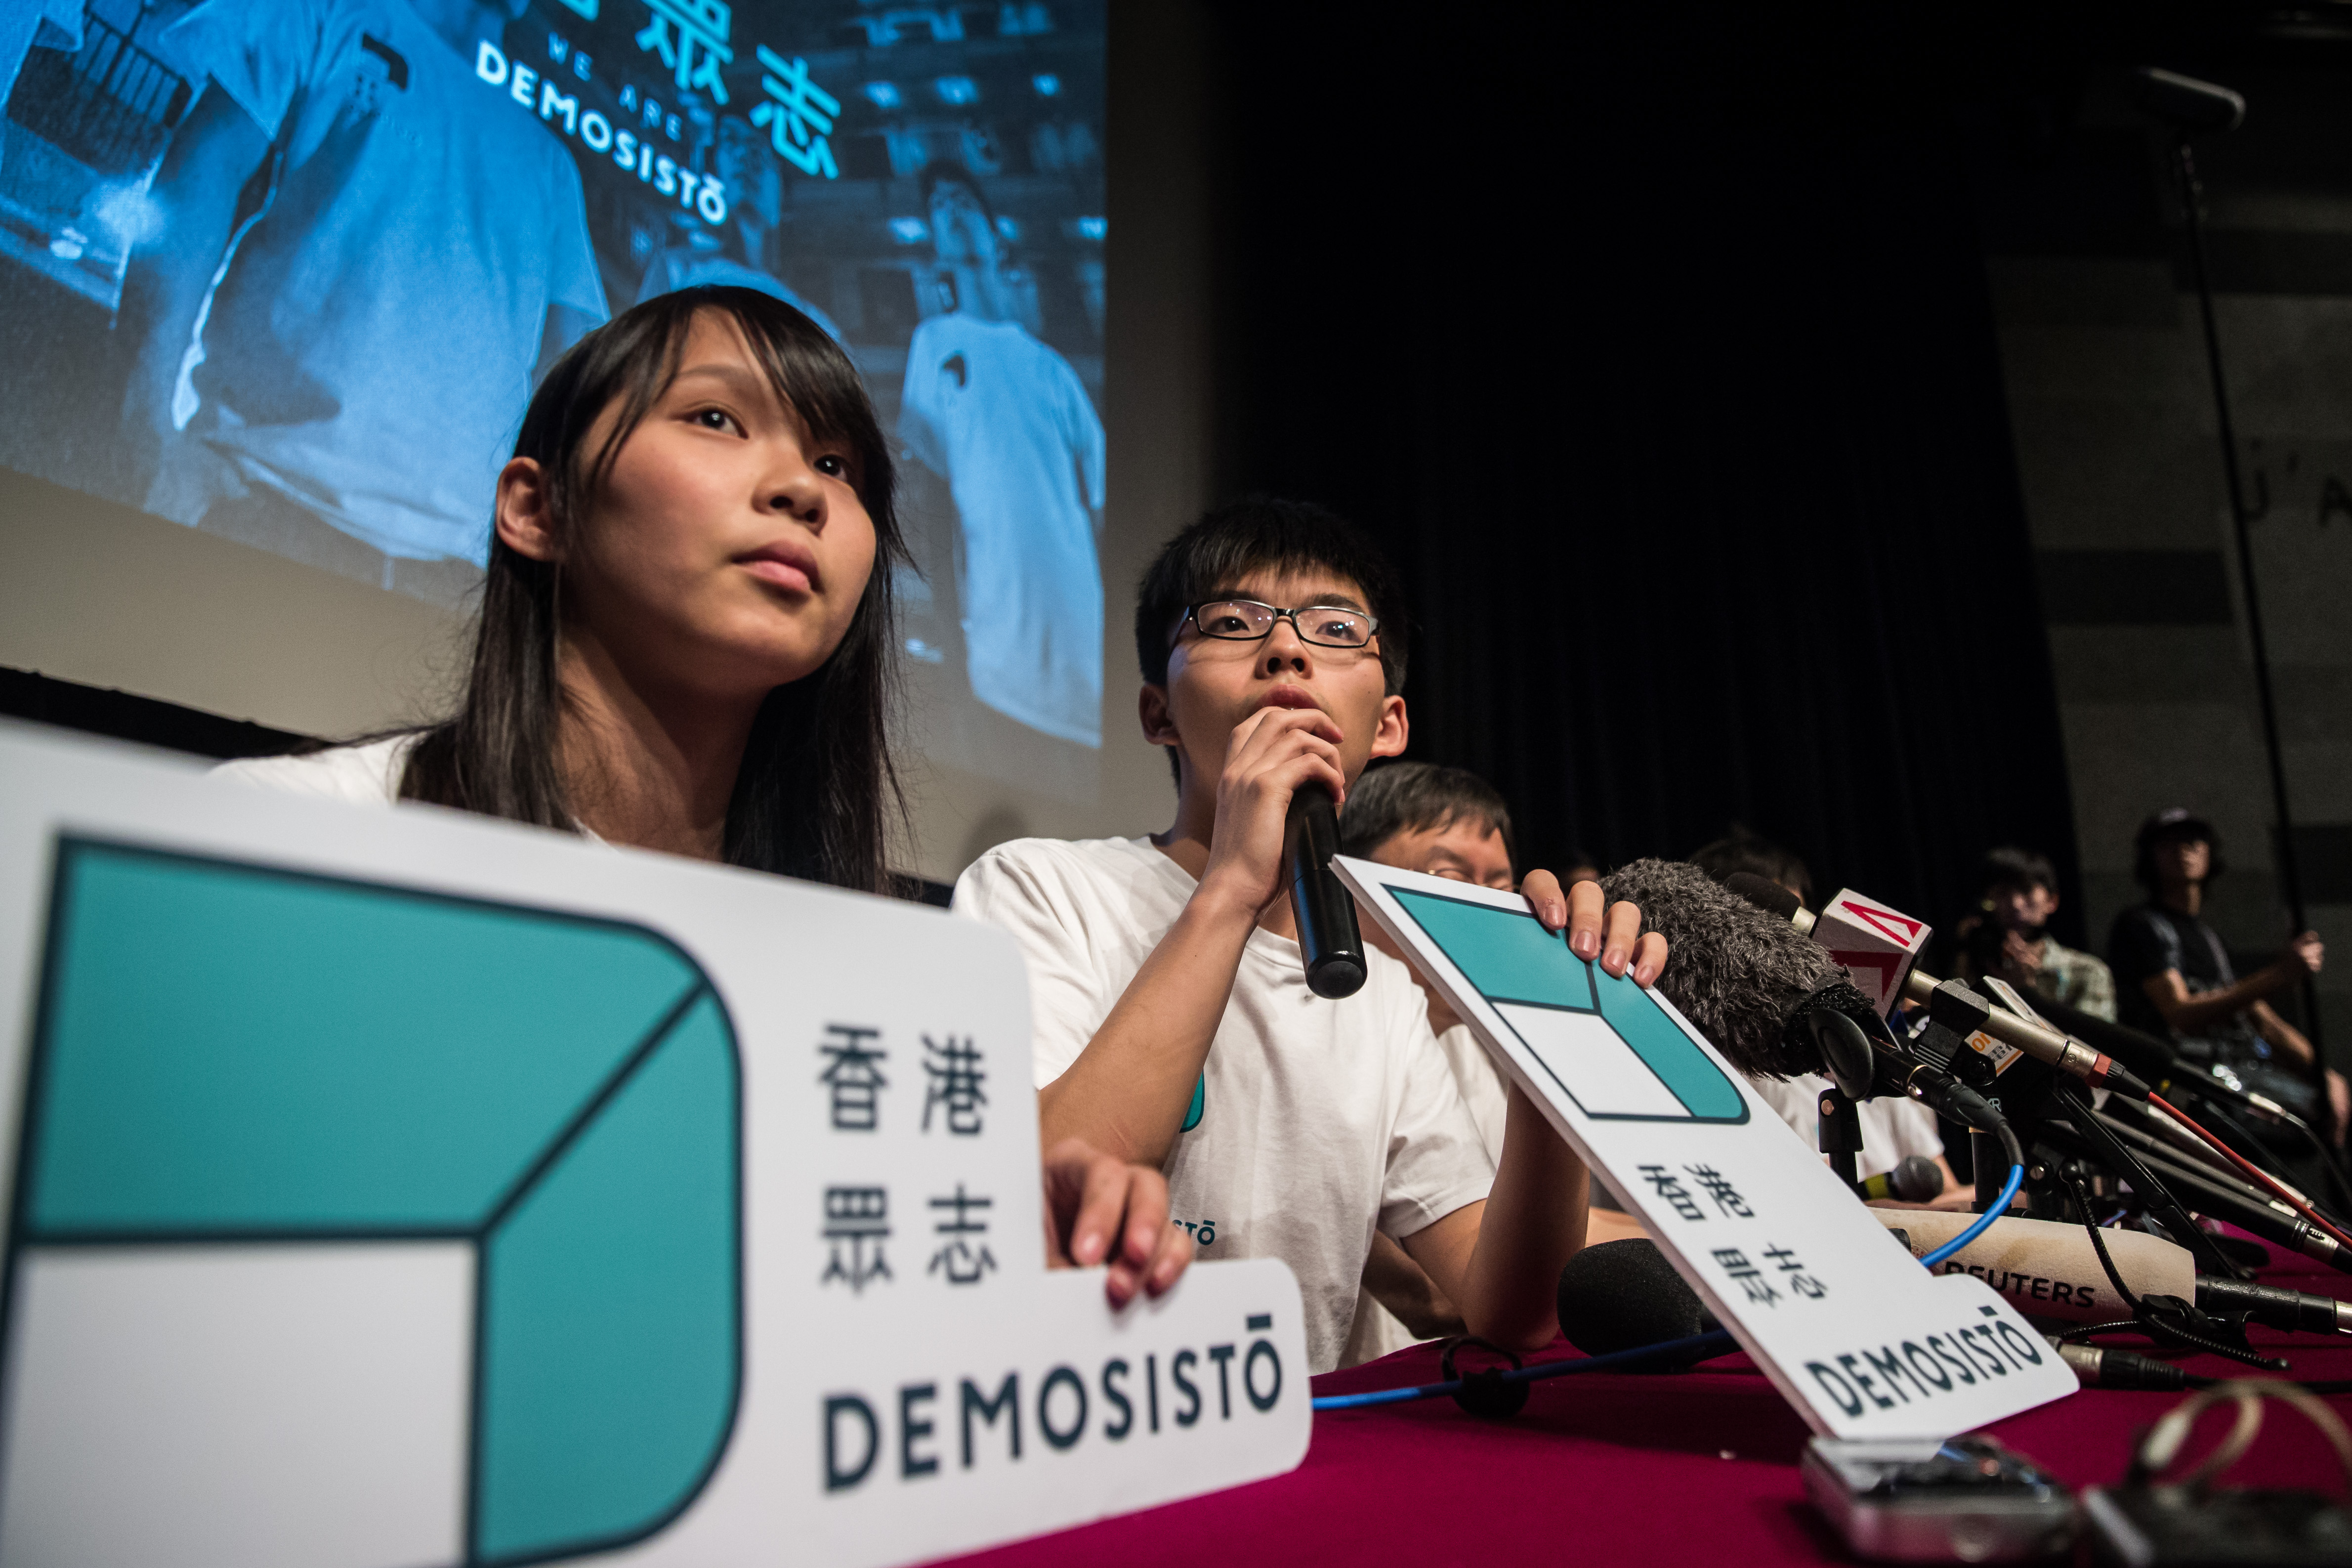 Pro-democracy student leader Joshua Wong, center, speaks as Agnes Chow listens during a press conference to introduce their new pro-democracy political party called Demosistō in Hong Kong on April 10, 2016